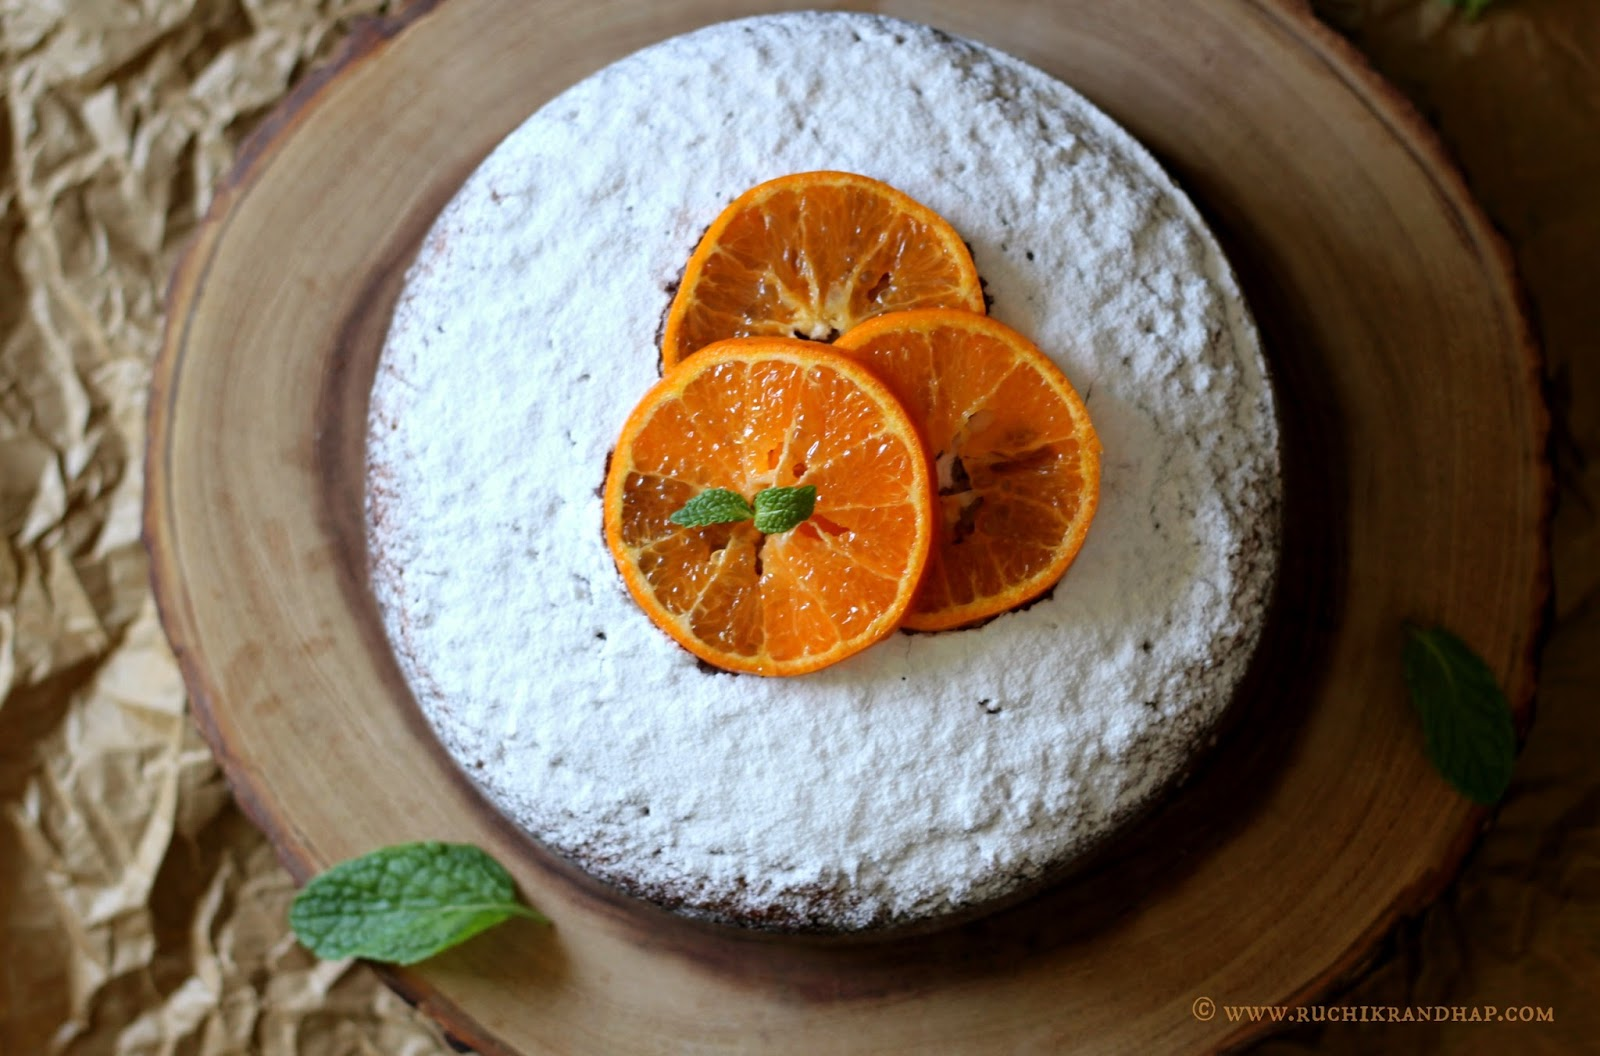 Orange Cake Using Whole Oranges